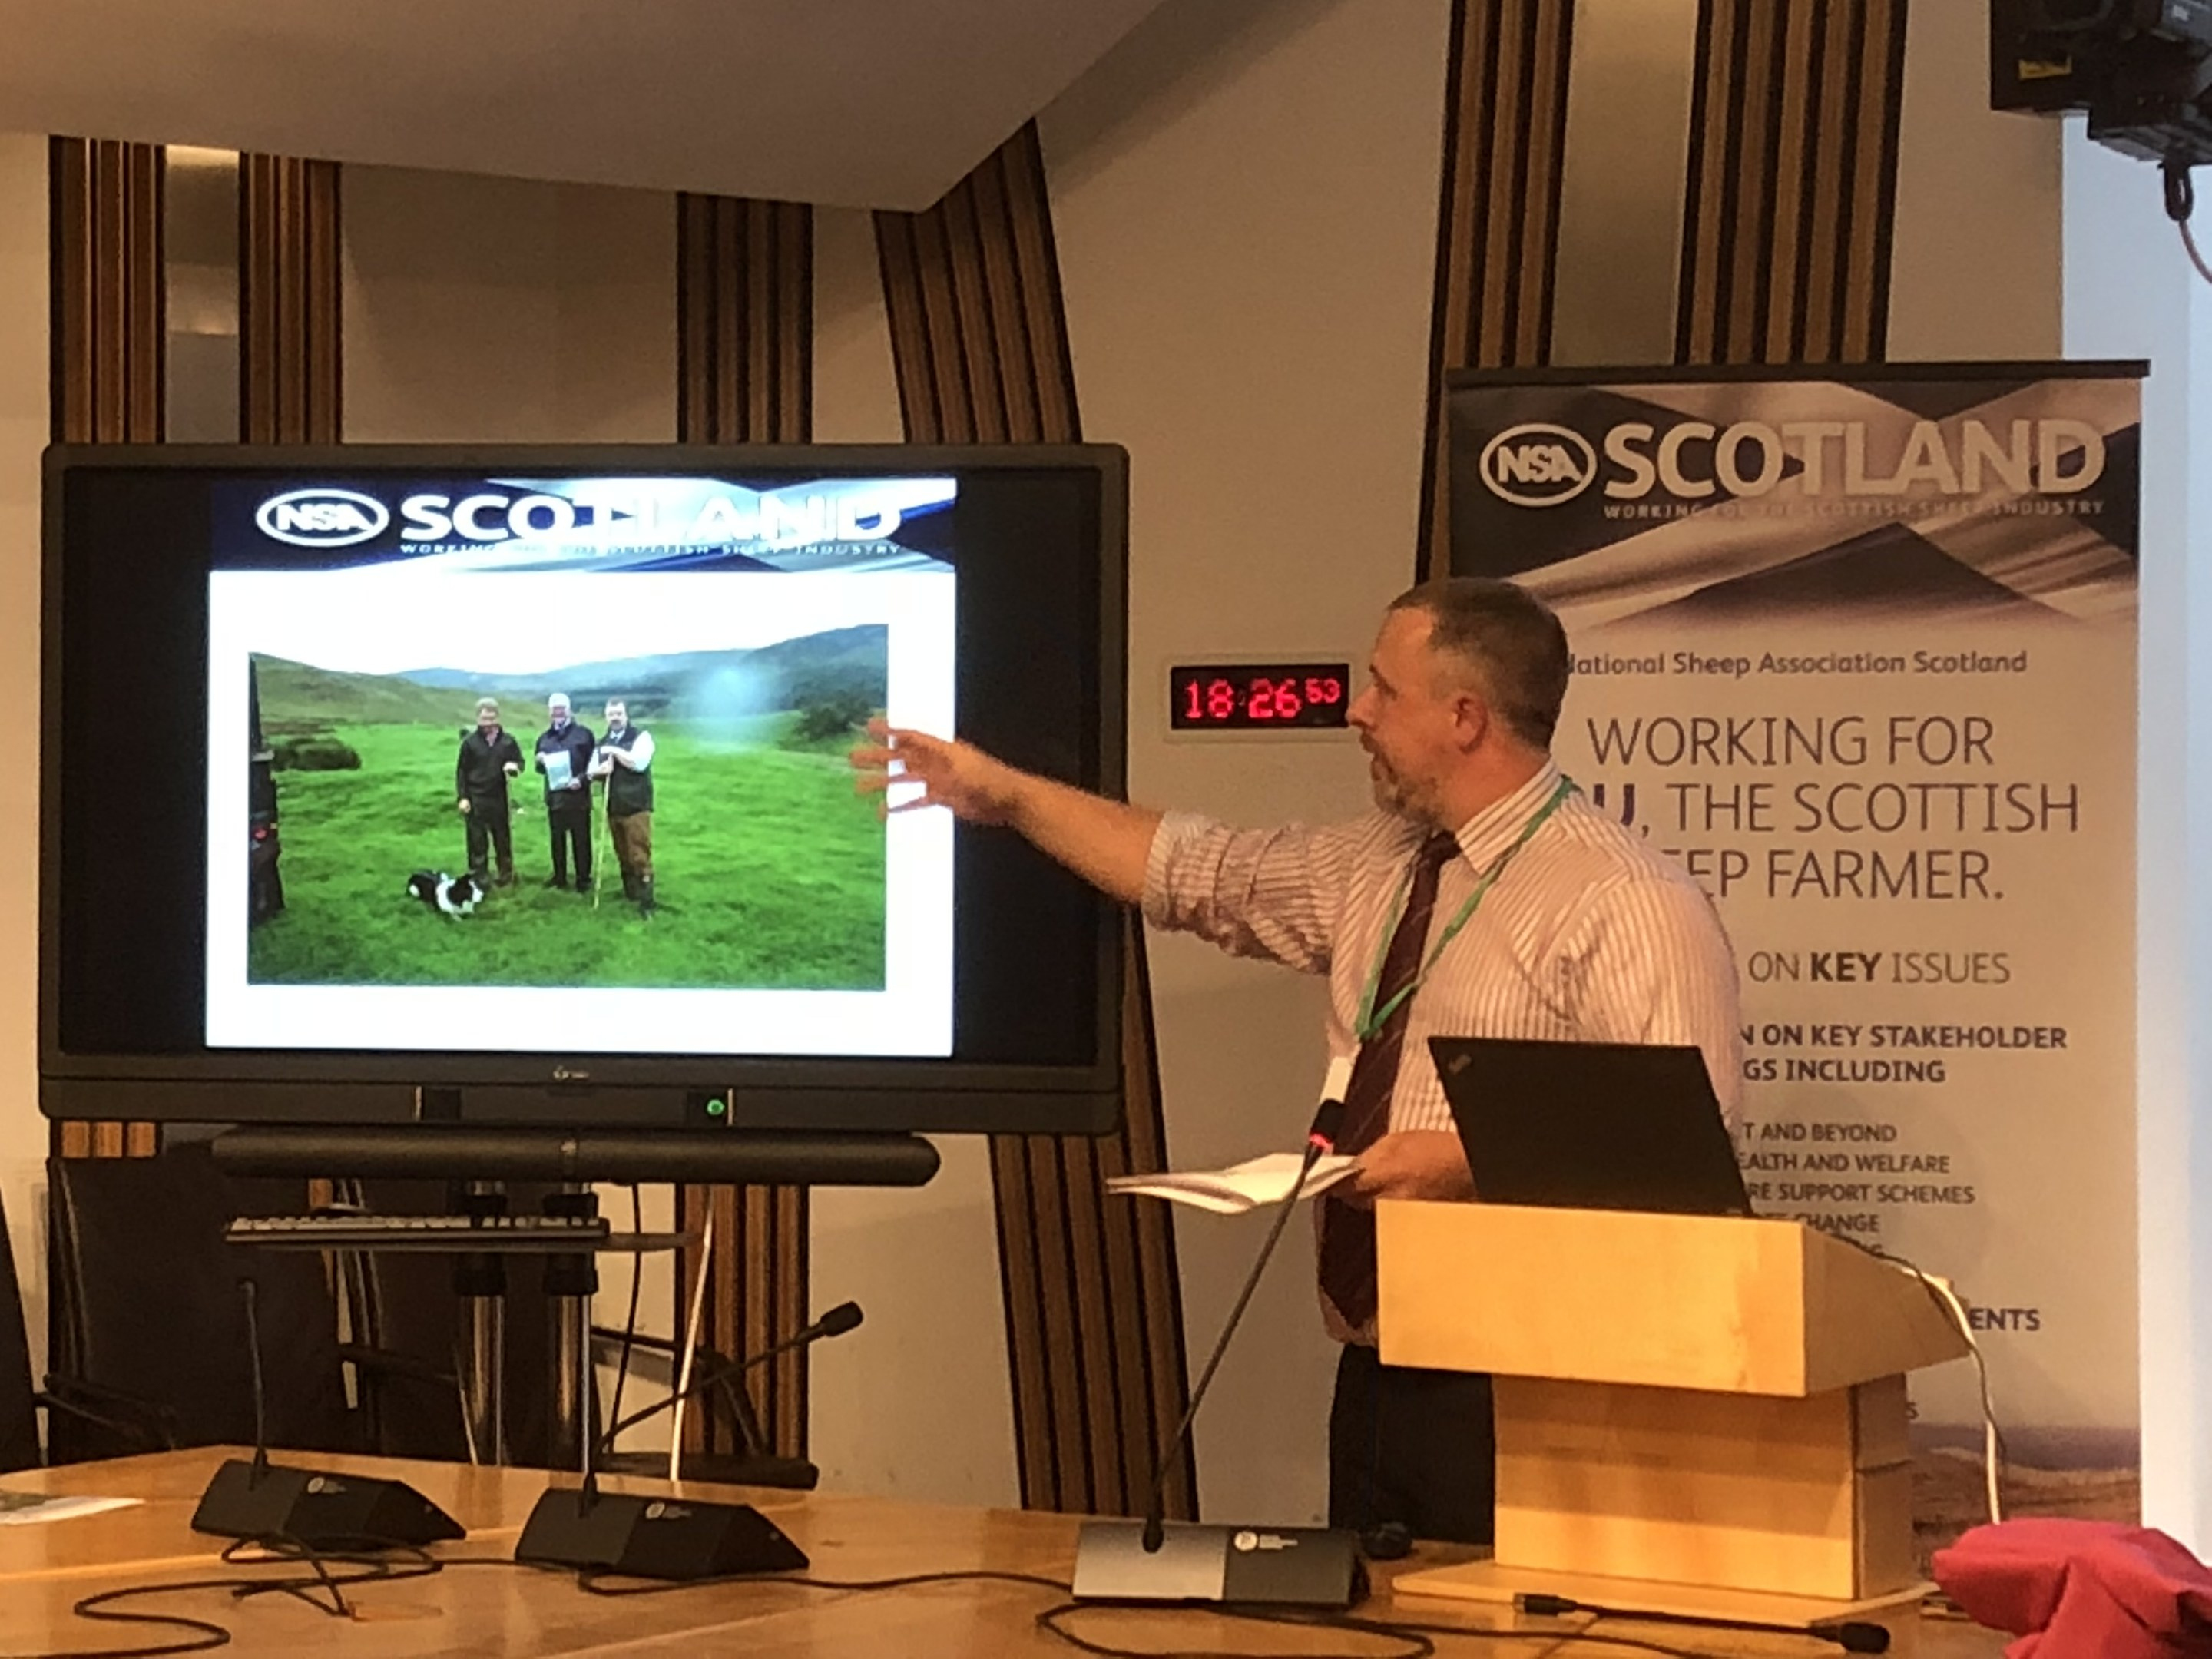 NSA Scotland chairman John Fyall believes the sheep industry has the potential to be worth  £1 billion to Scotland's rural economy.